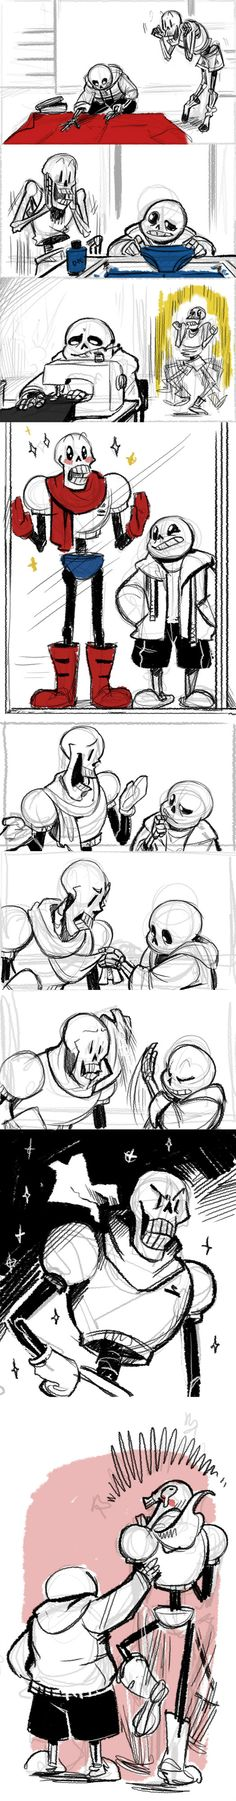 Sans and Papyrus - comic - http://crispy-ghee.tumblr.com/post/131768470466/sure-this-is-a-comic-not-just-a-sketch